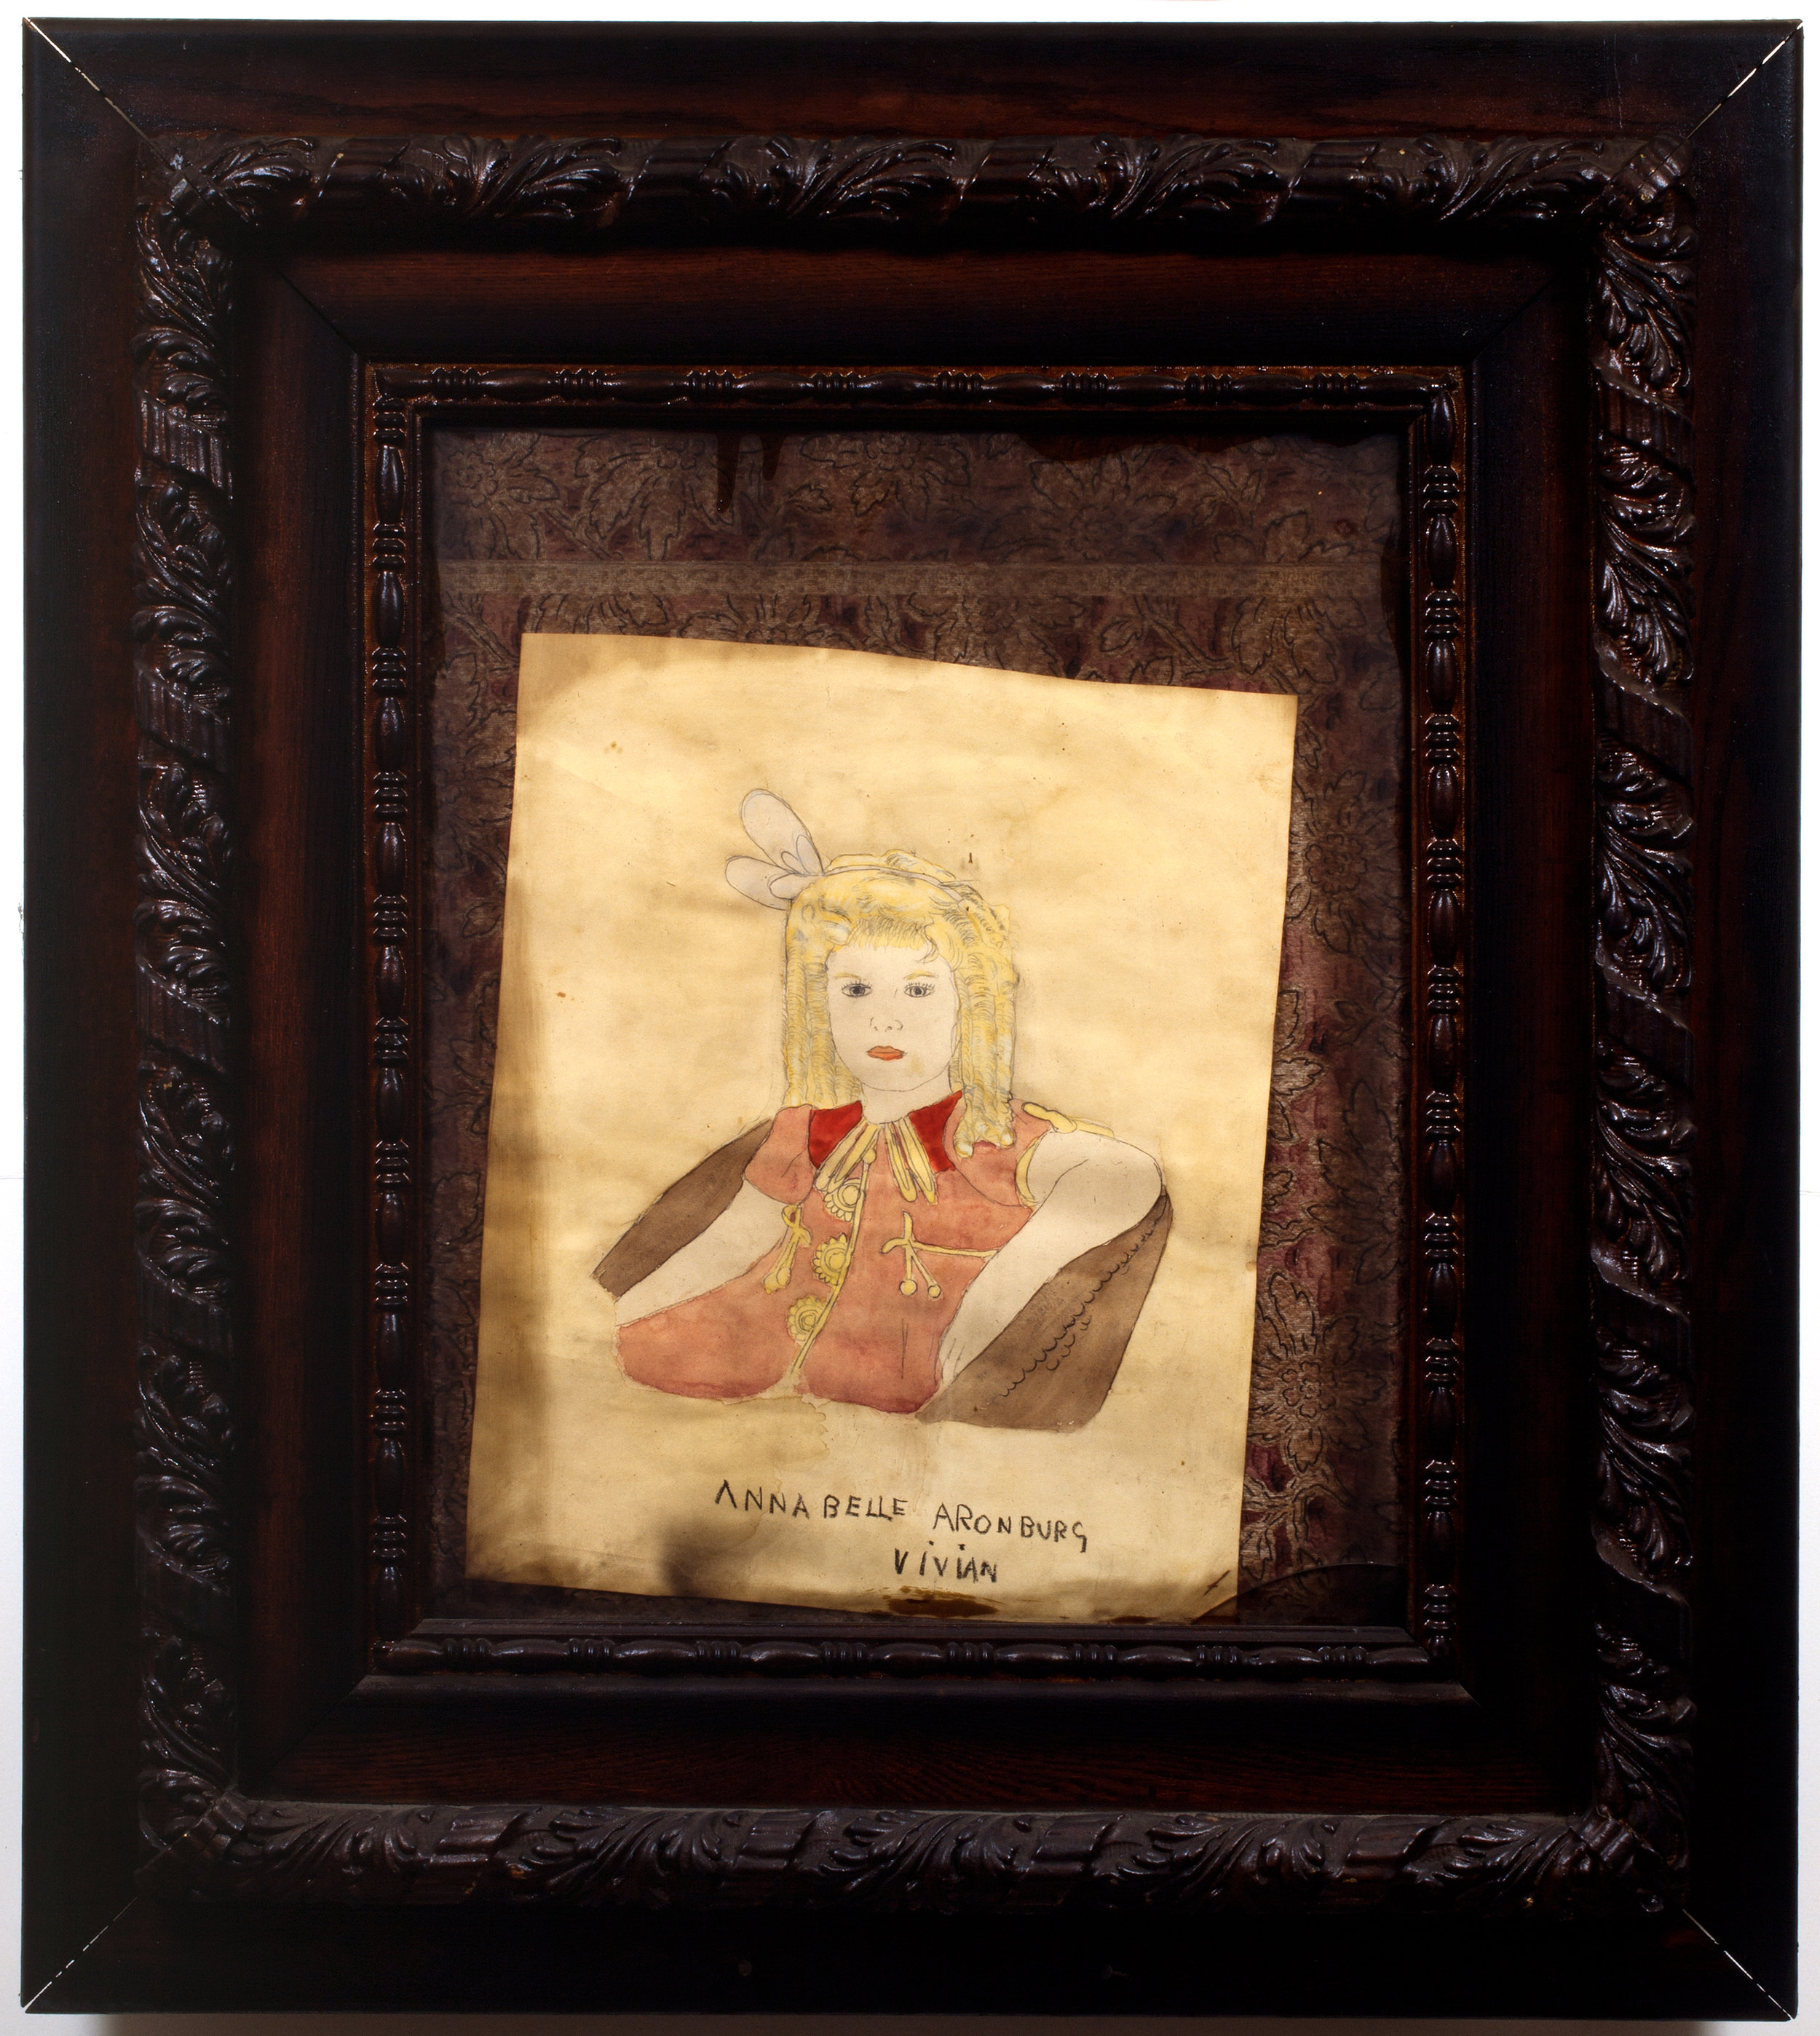 Henry Darger (American, 1892-1973). Annabelle Aronberg Vivian, ca. 1940s. Mixed media on paper, 35 ½ x 31 ½ in. (framed). Photo by John Faier. Collection of Robert A. Roth